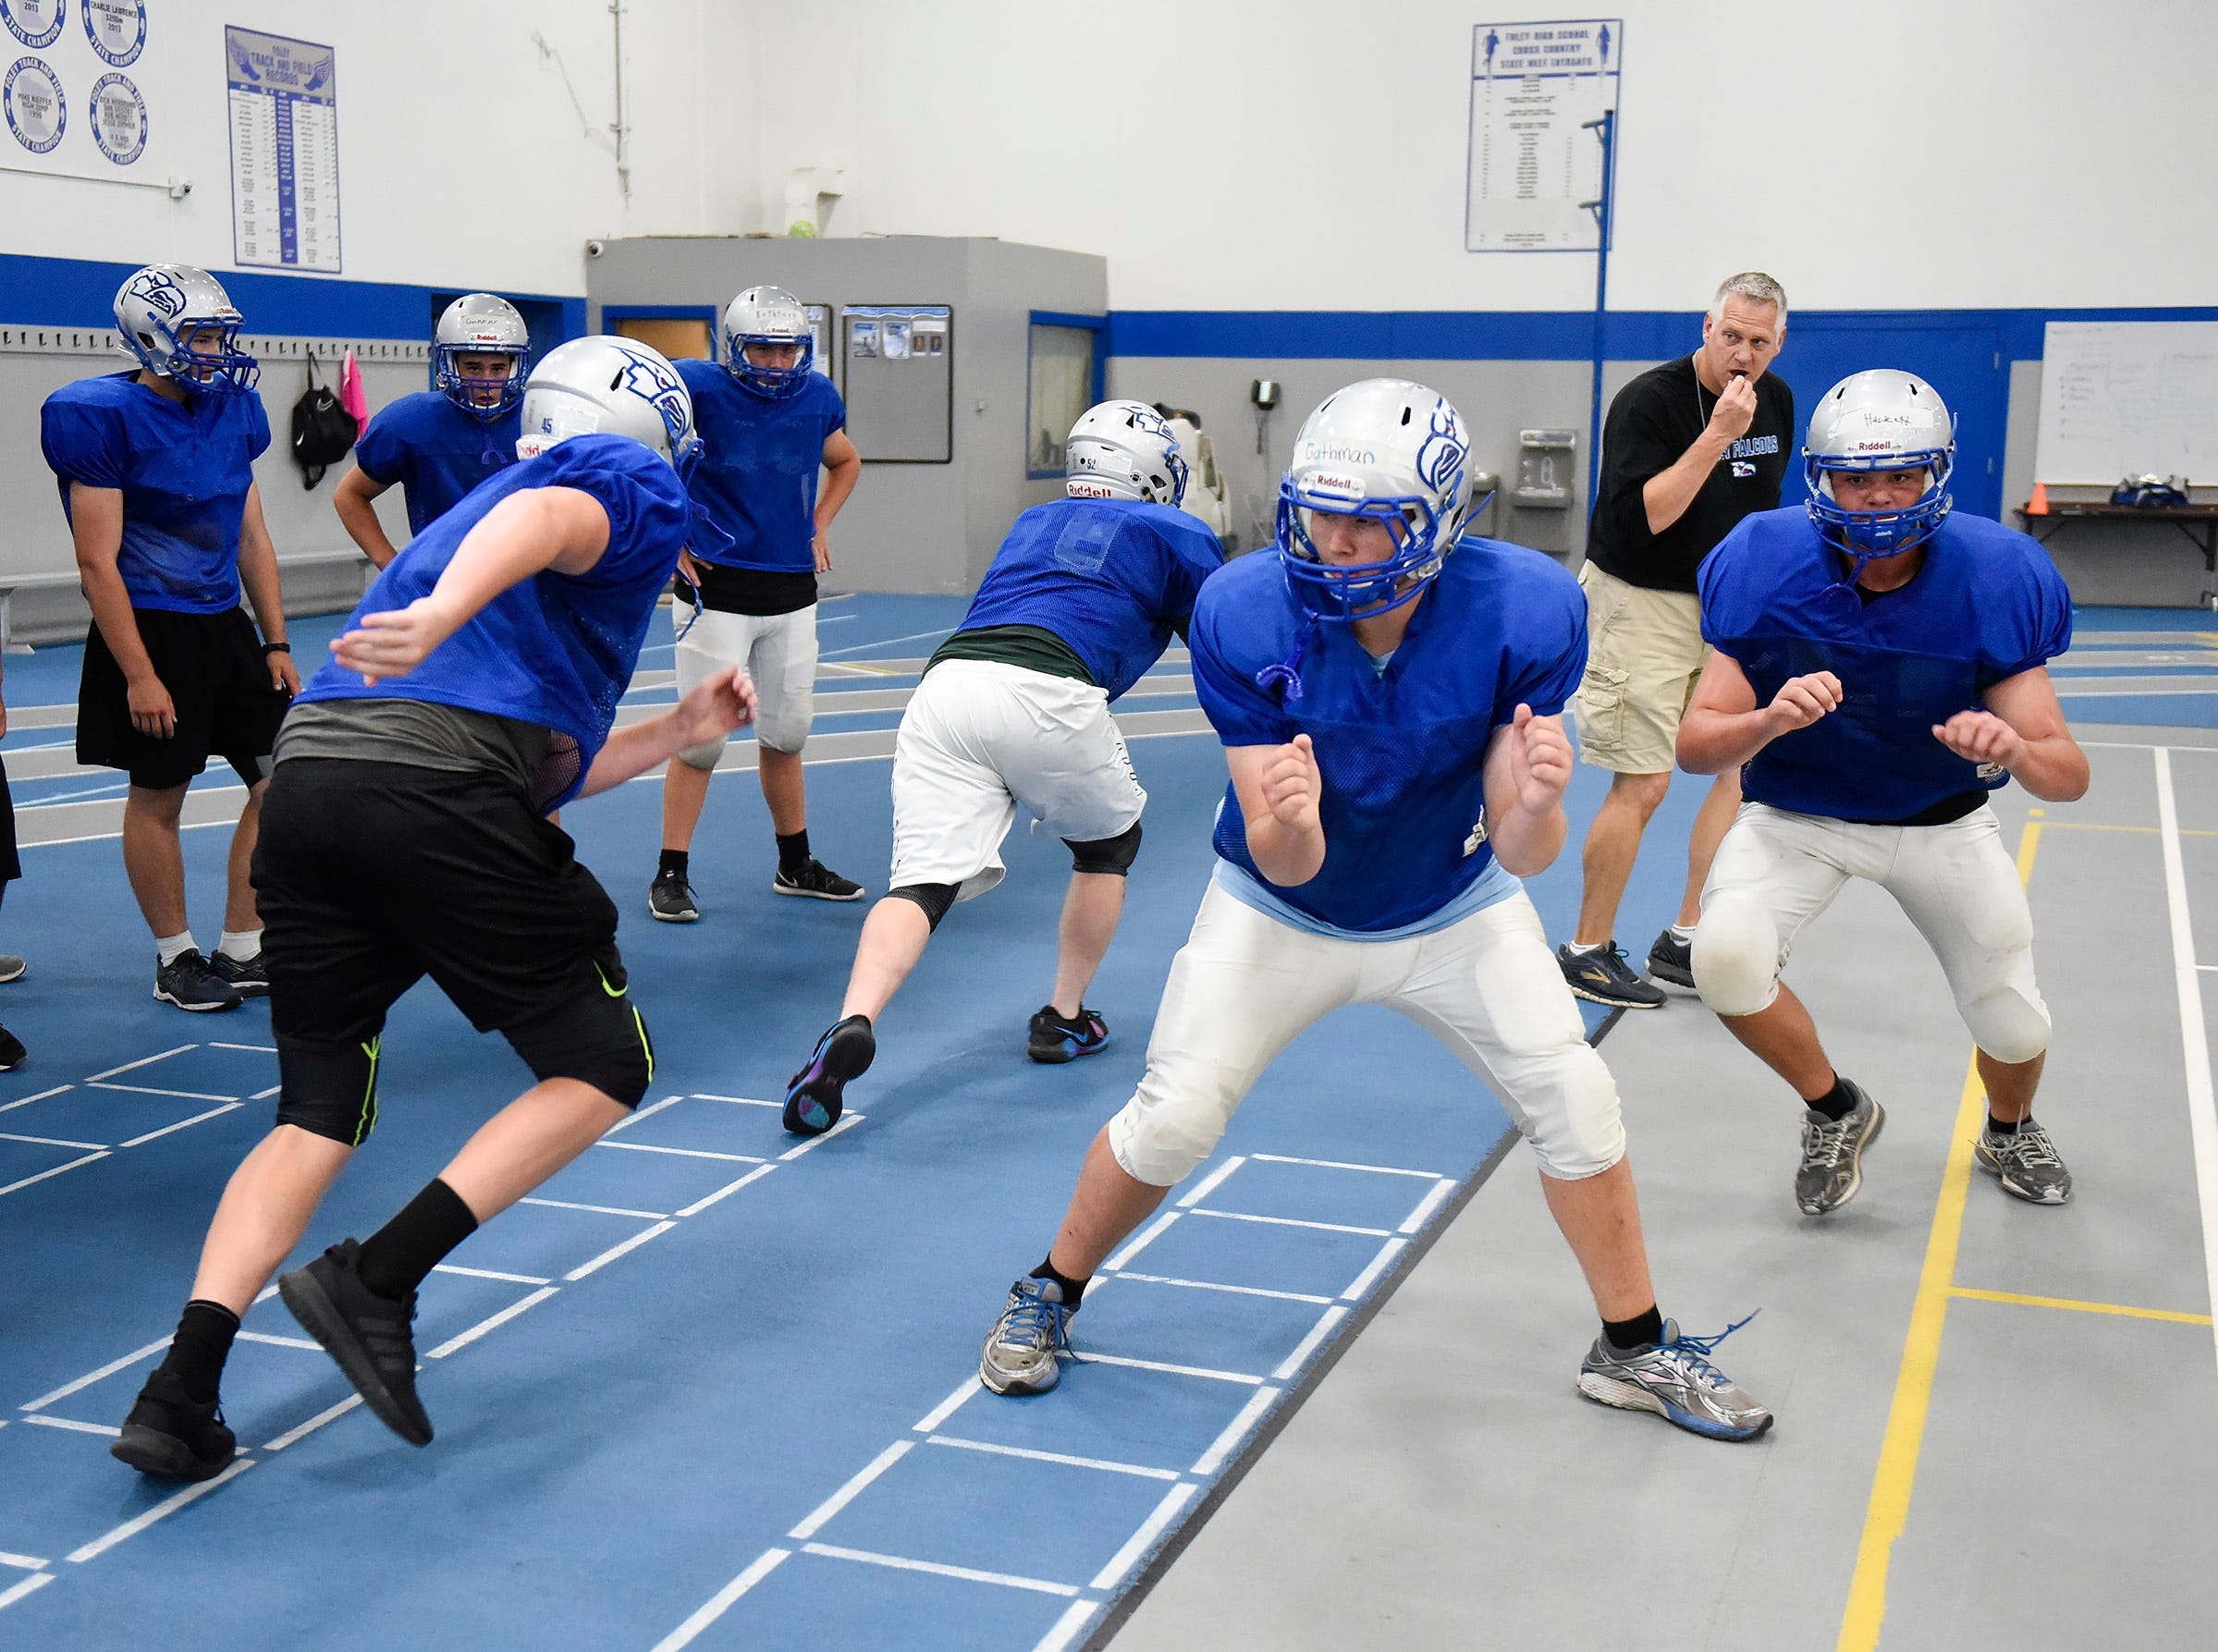 Foley's offensive line run their blocking plays during practice Monday, Aug. 20, at the Foley High School.